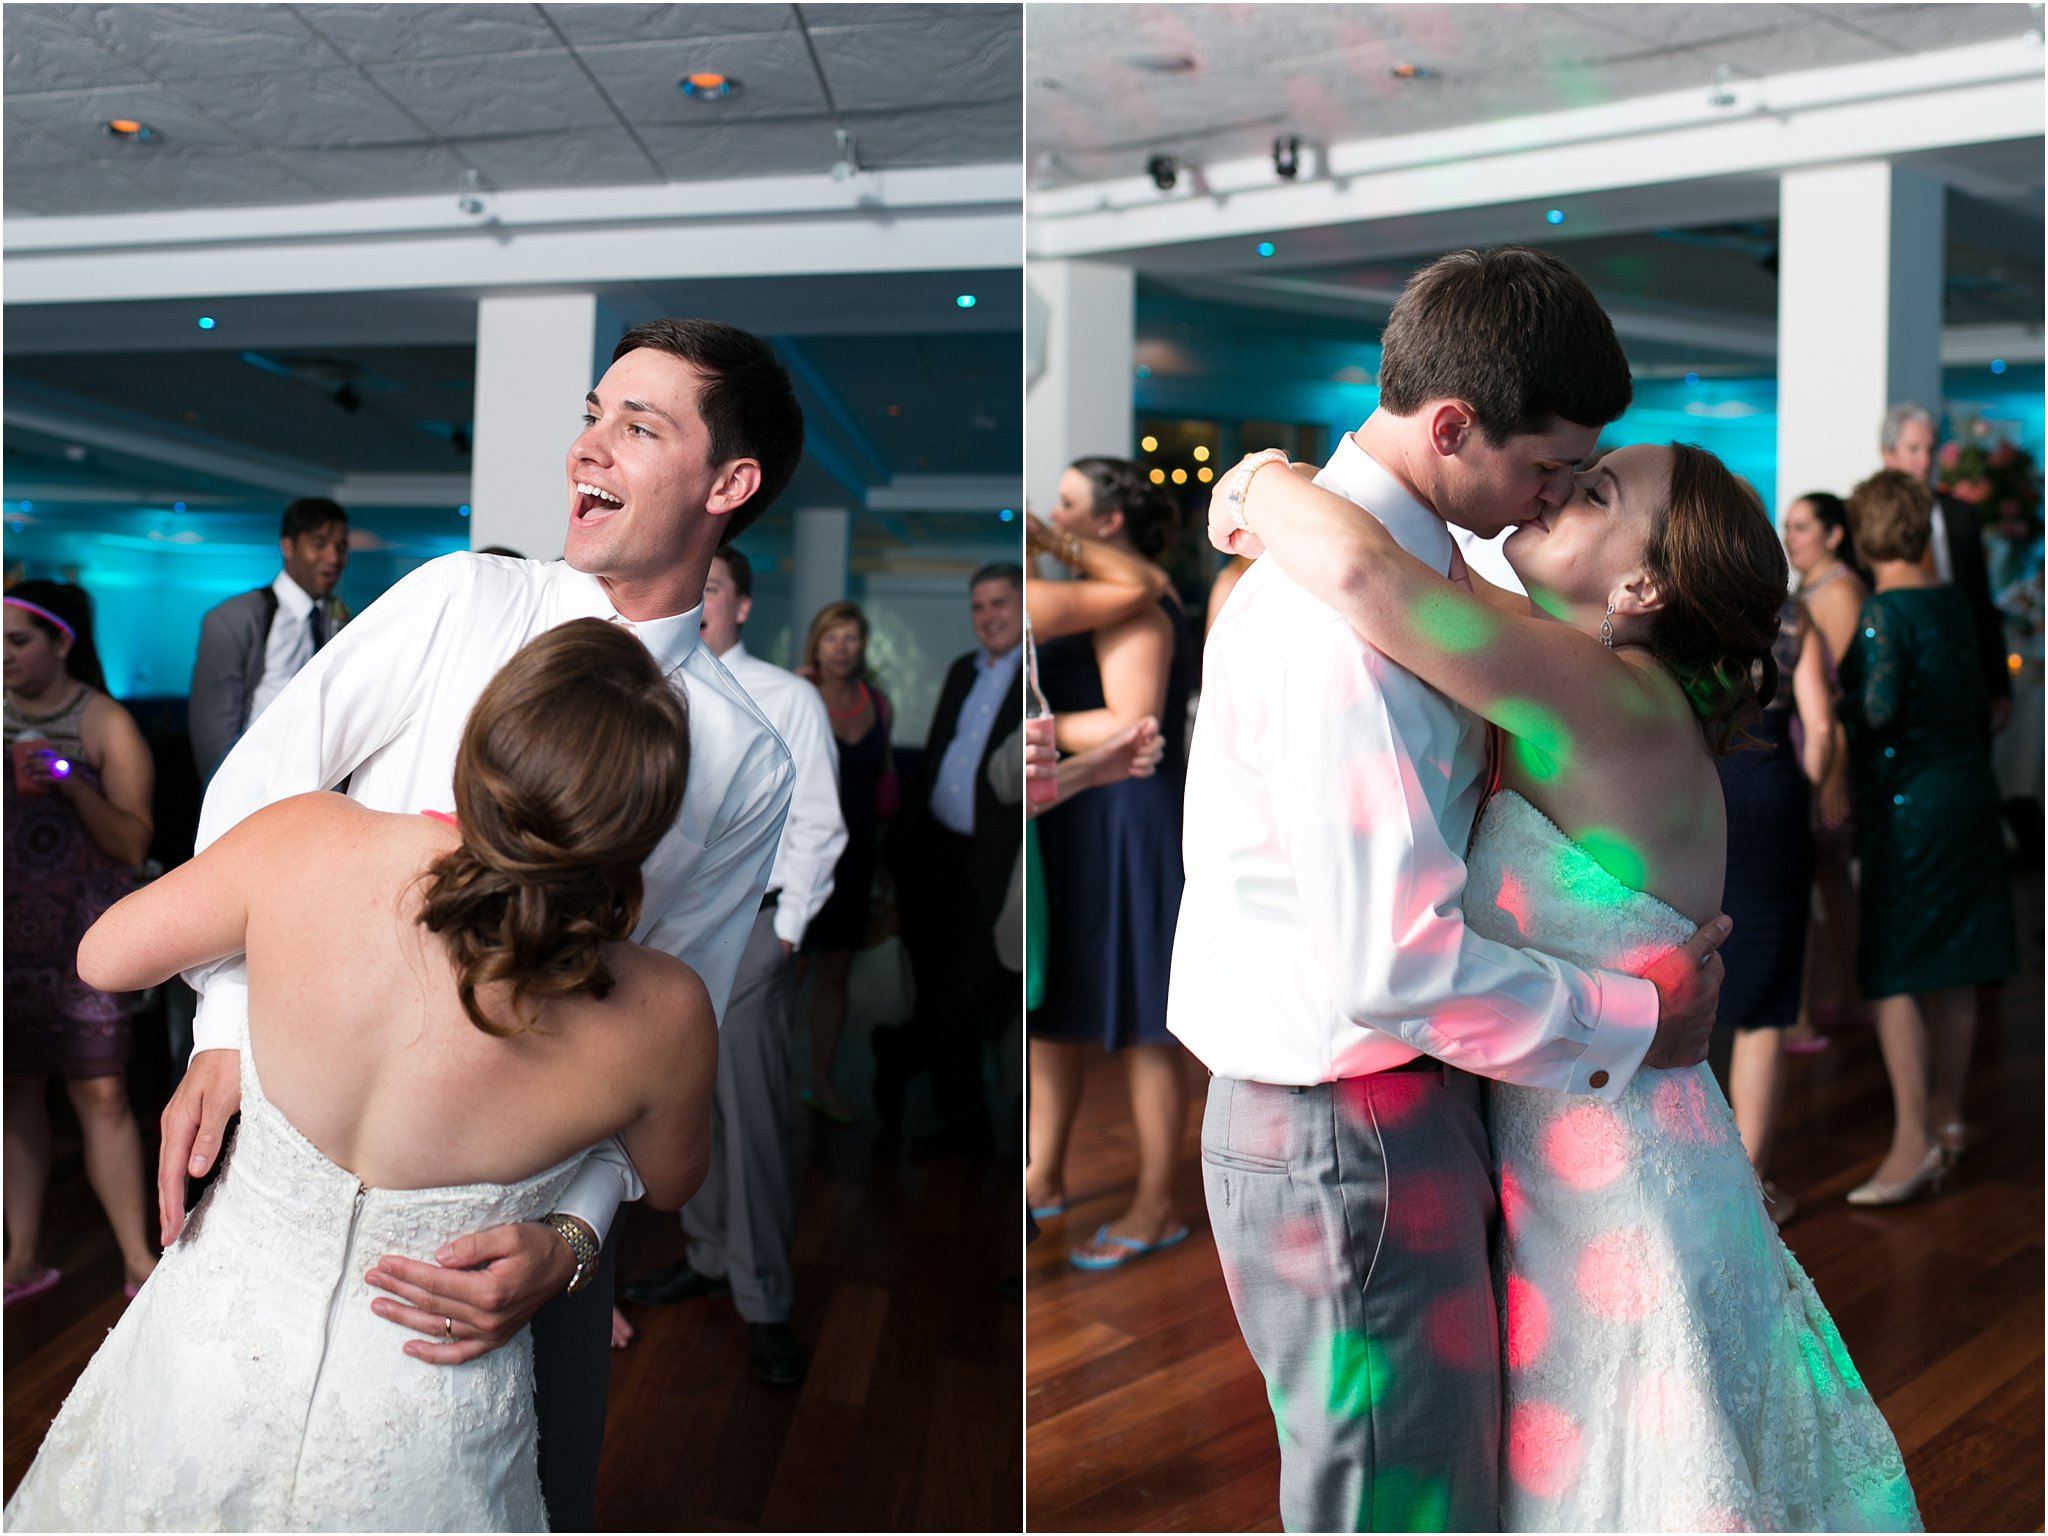 jessica_ryan_photography_wedding_photography_virginiabeach_virginia_candid_authentic_wedding_portraits_marina_shores_yacht_club_chesapeake_bay_1971